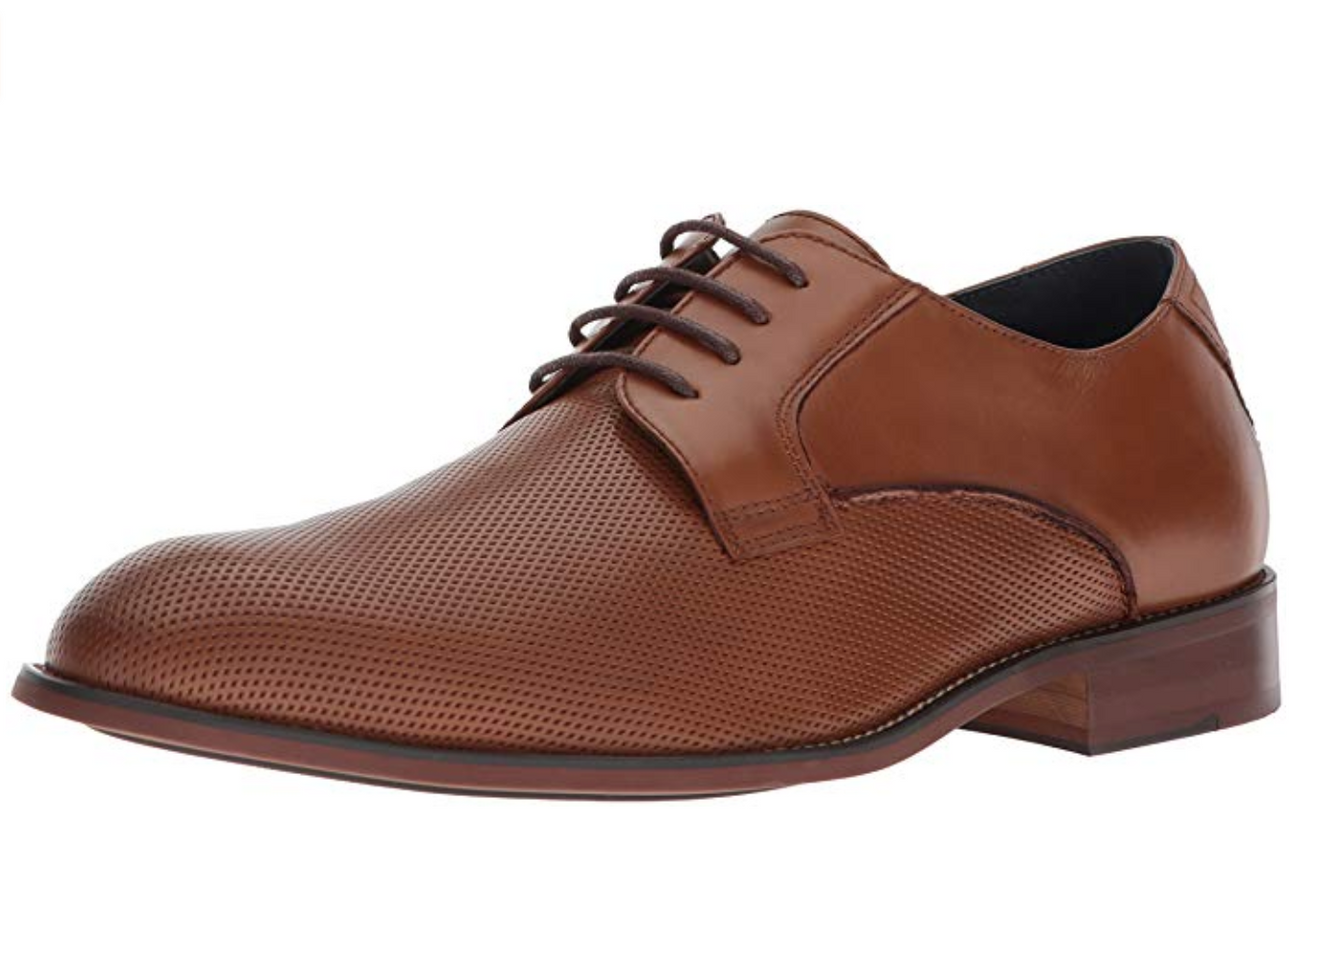 Steve Madden Men's Hicksin Oxford